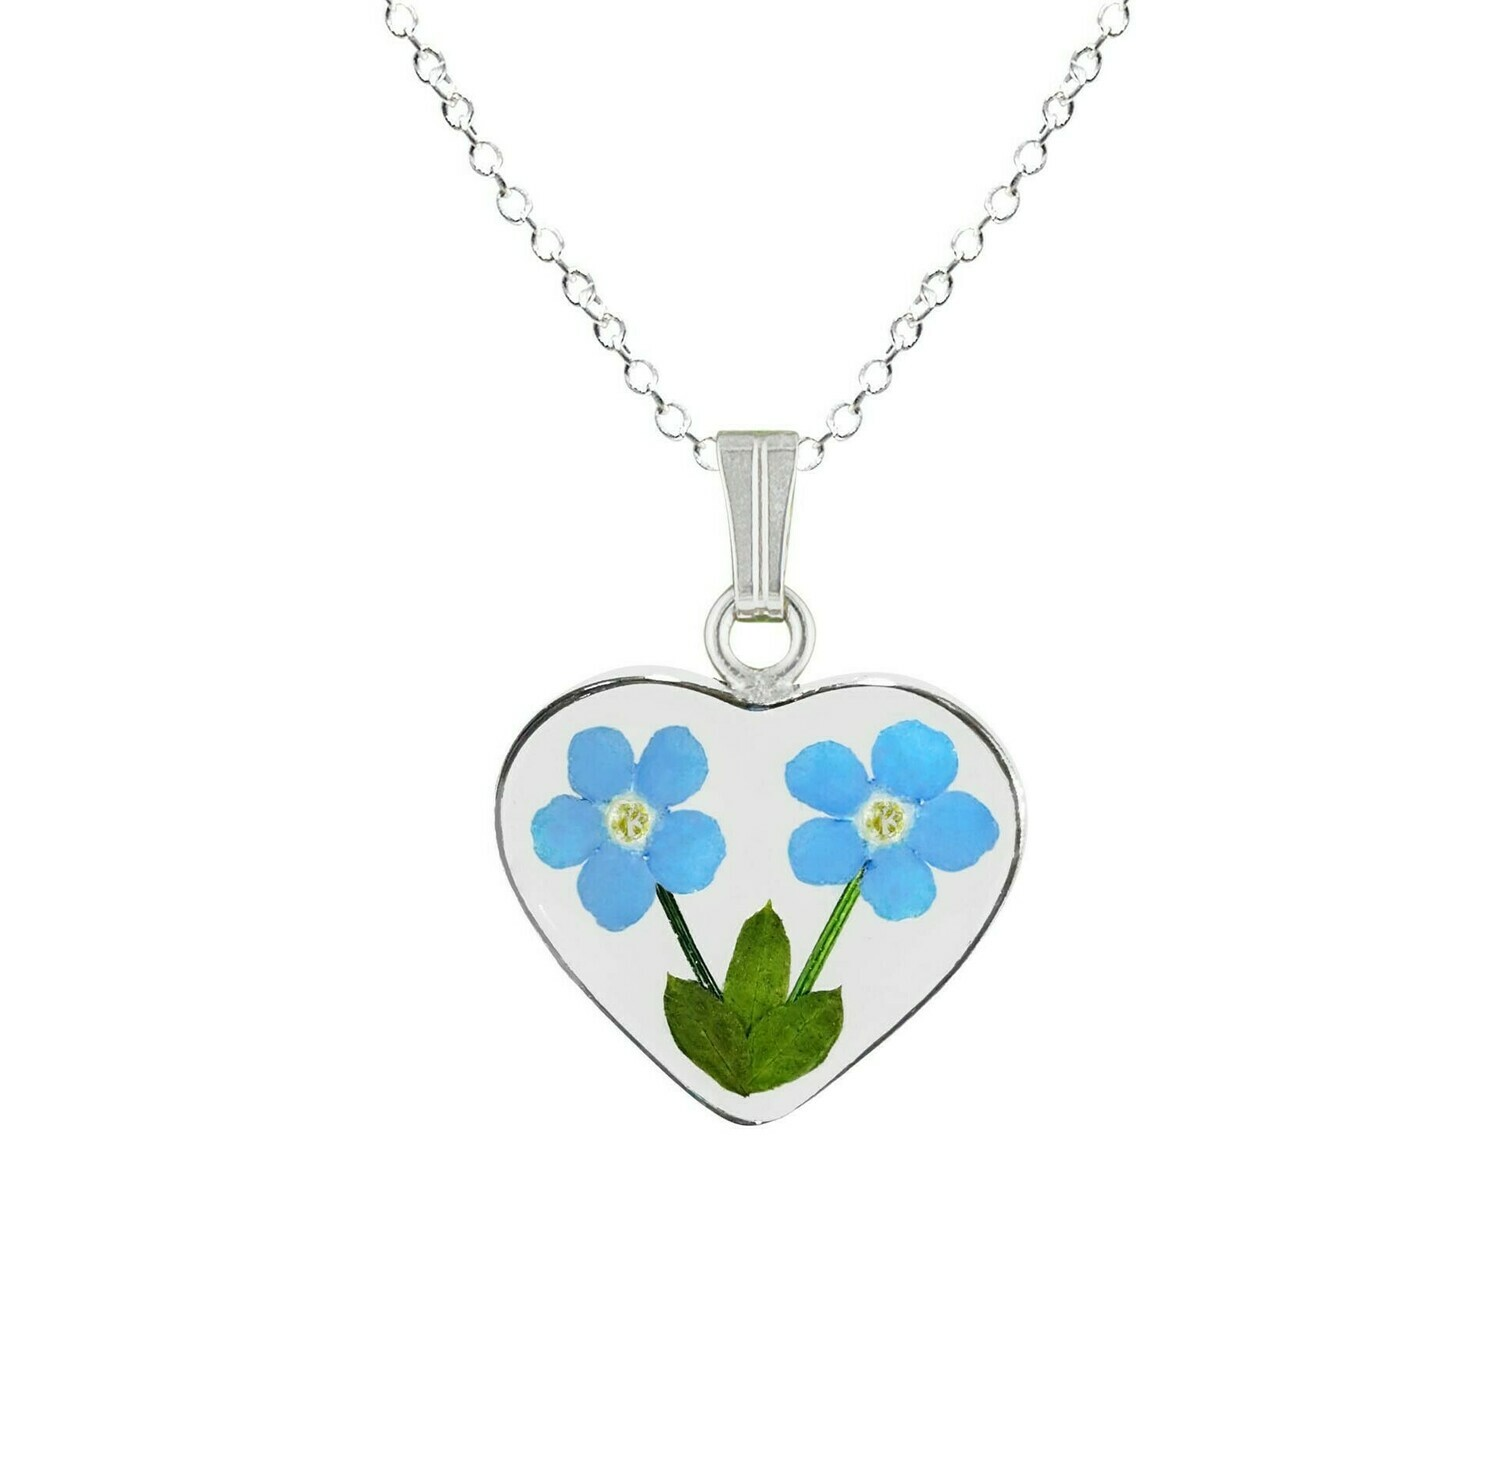 Forget-Me-Not Necklace, Medium Heart, Transparent